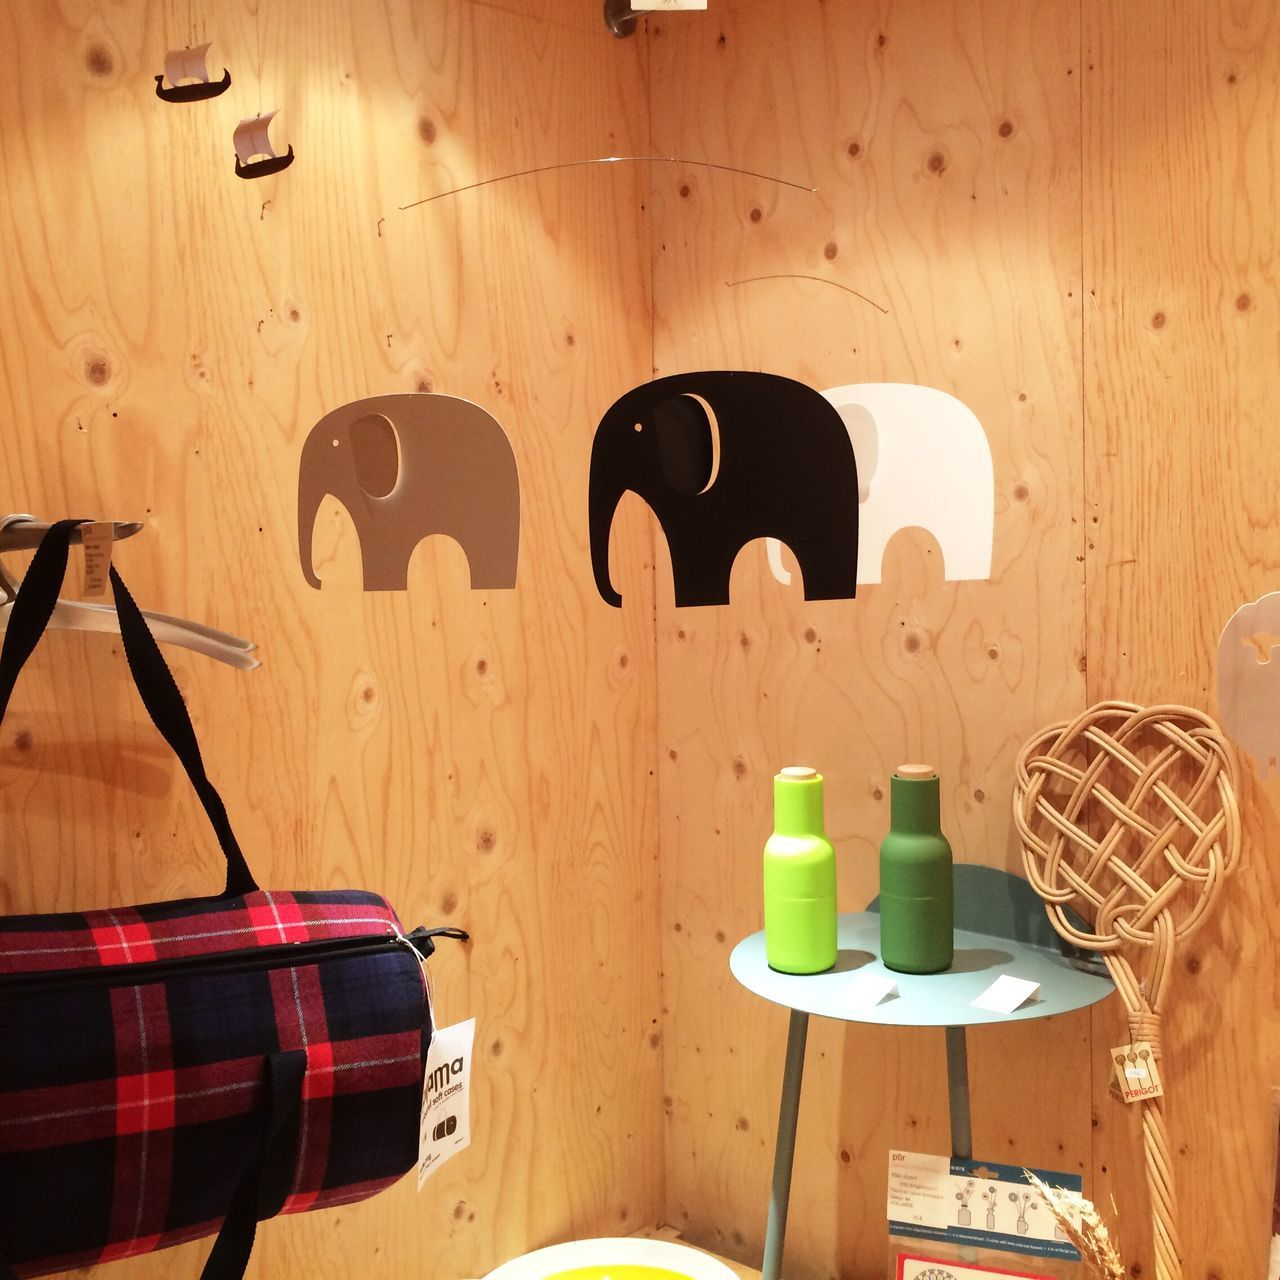 3 Elephants Always Be Cozy Wood - Material Indoors  Day No People Lifestyle Design Interior Design Interior Interior Views